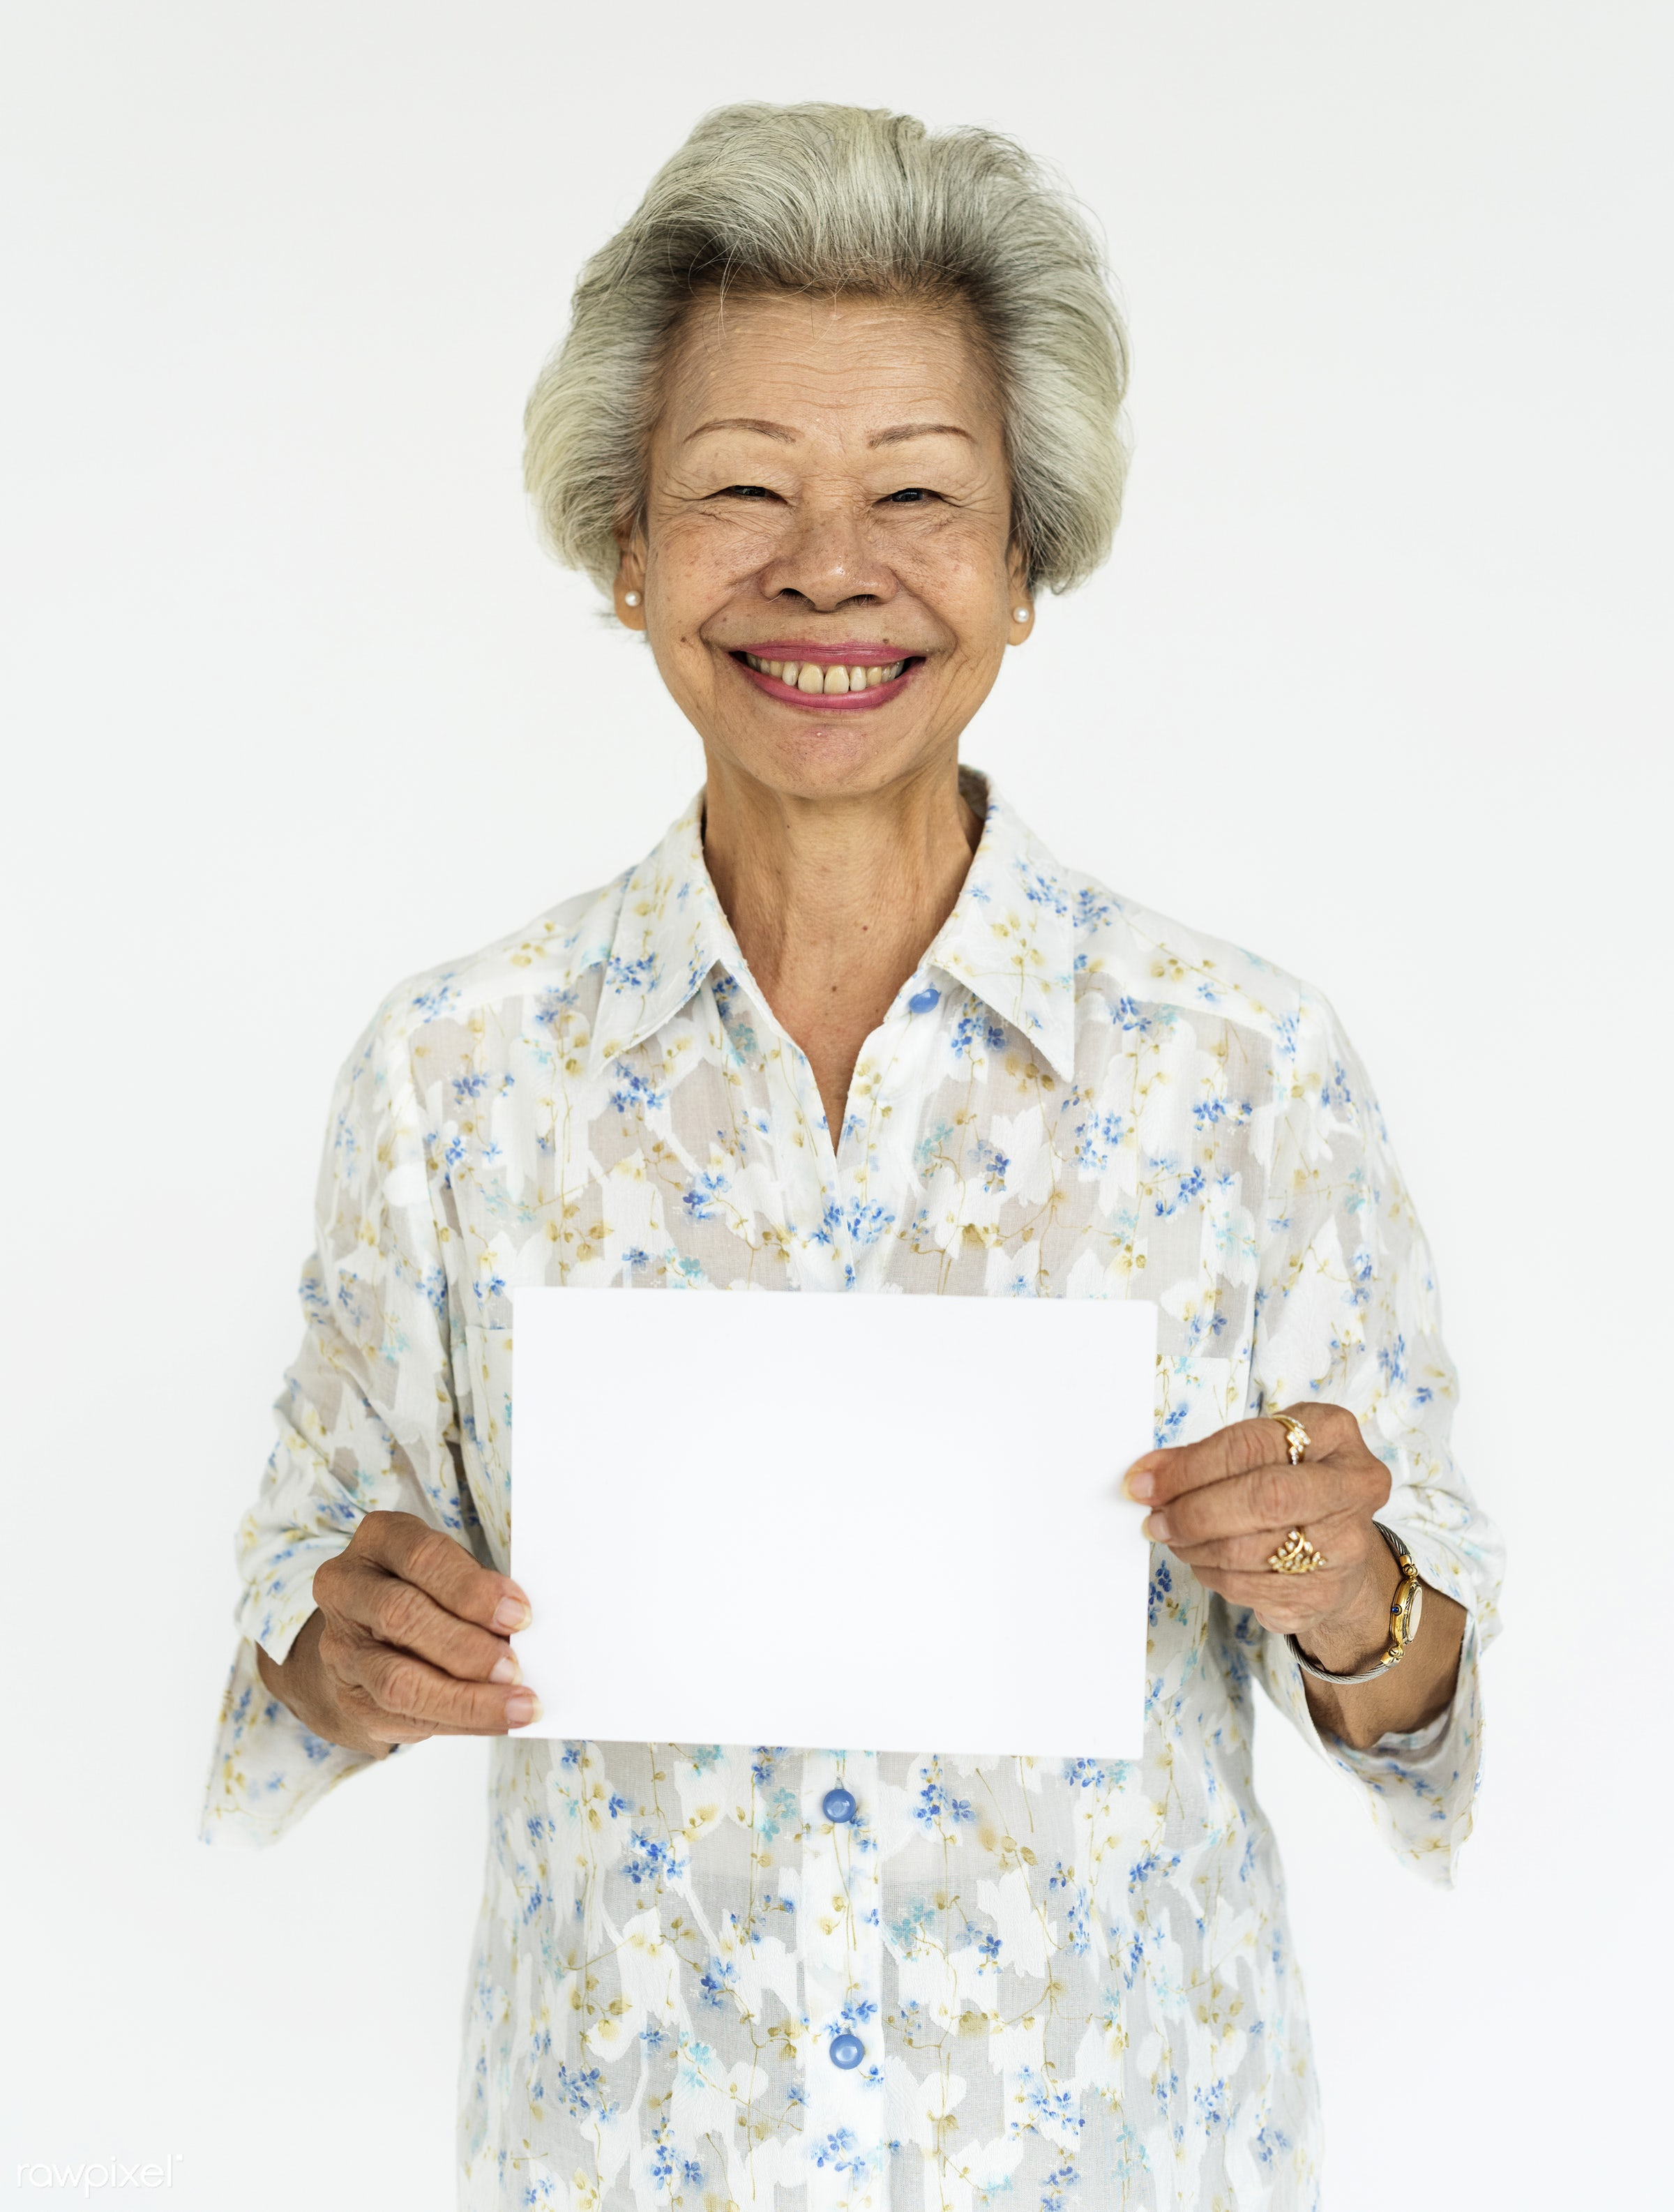 studio, expression, person, old, copy space, paper, isolated on white, advertising, asian, retirement, woman, empty, showing...